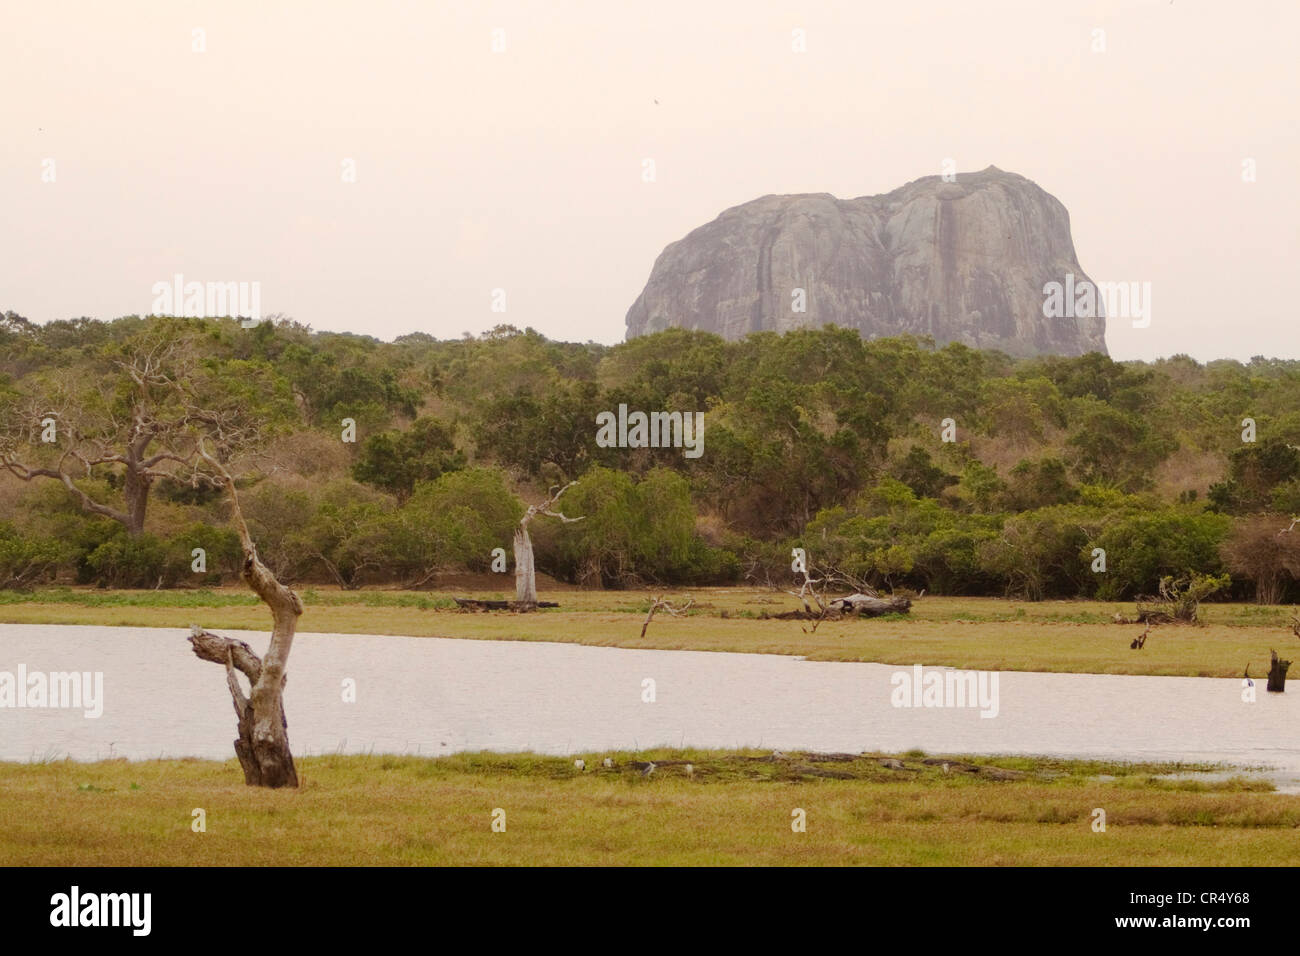 Elephant Rock, Yala West (Ruhuna) National Park, Sri Lanka - Stock Image